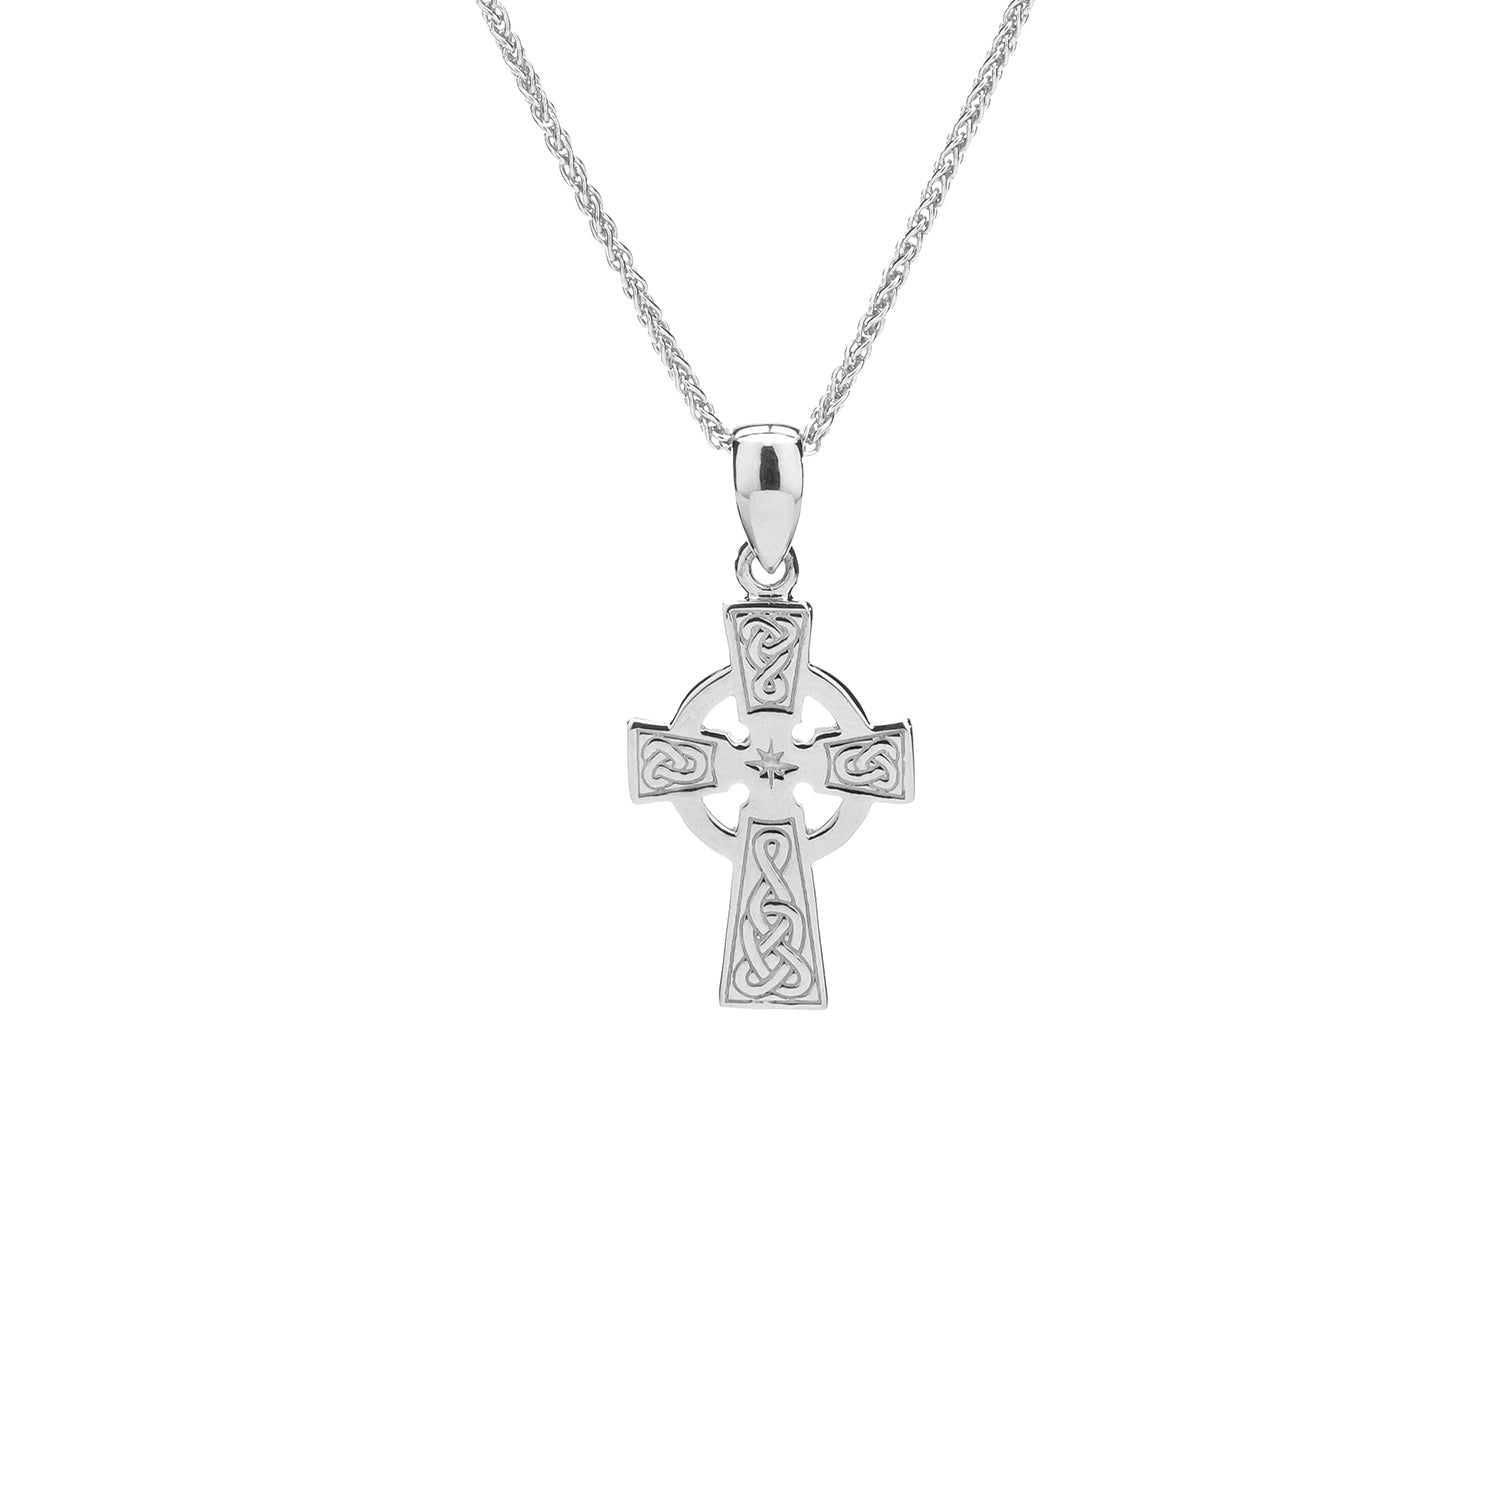 Pendant Celtic Cross Small Pendant from welch and company jewelers near syracuse ny